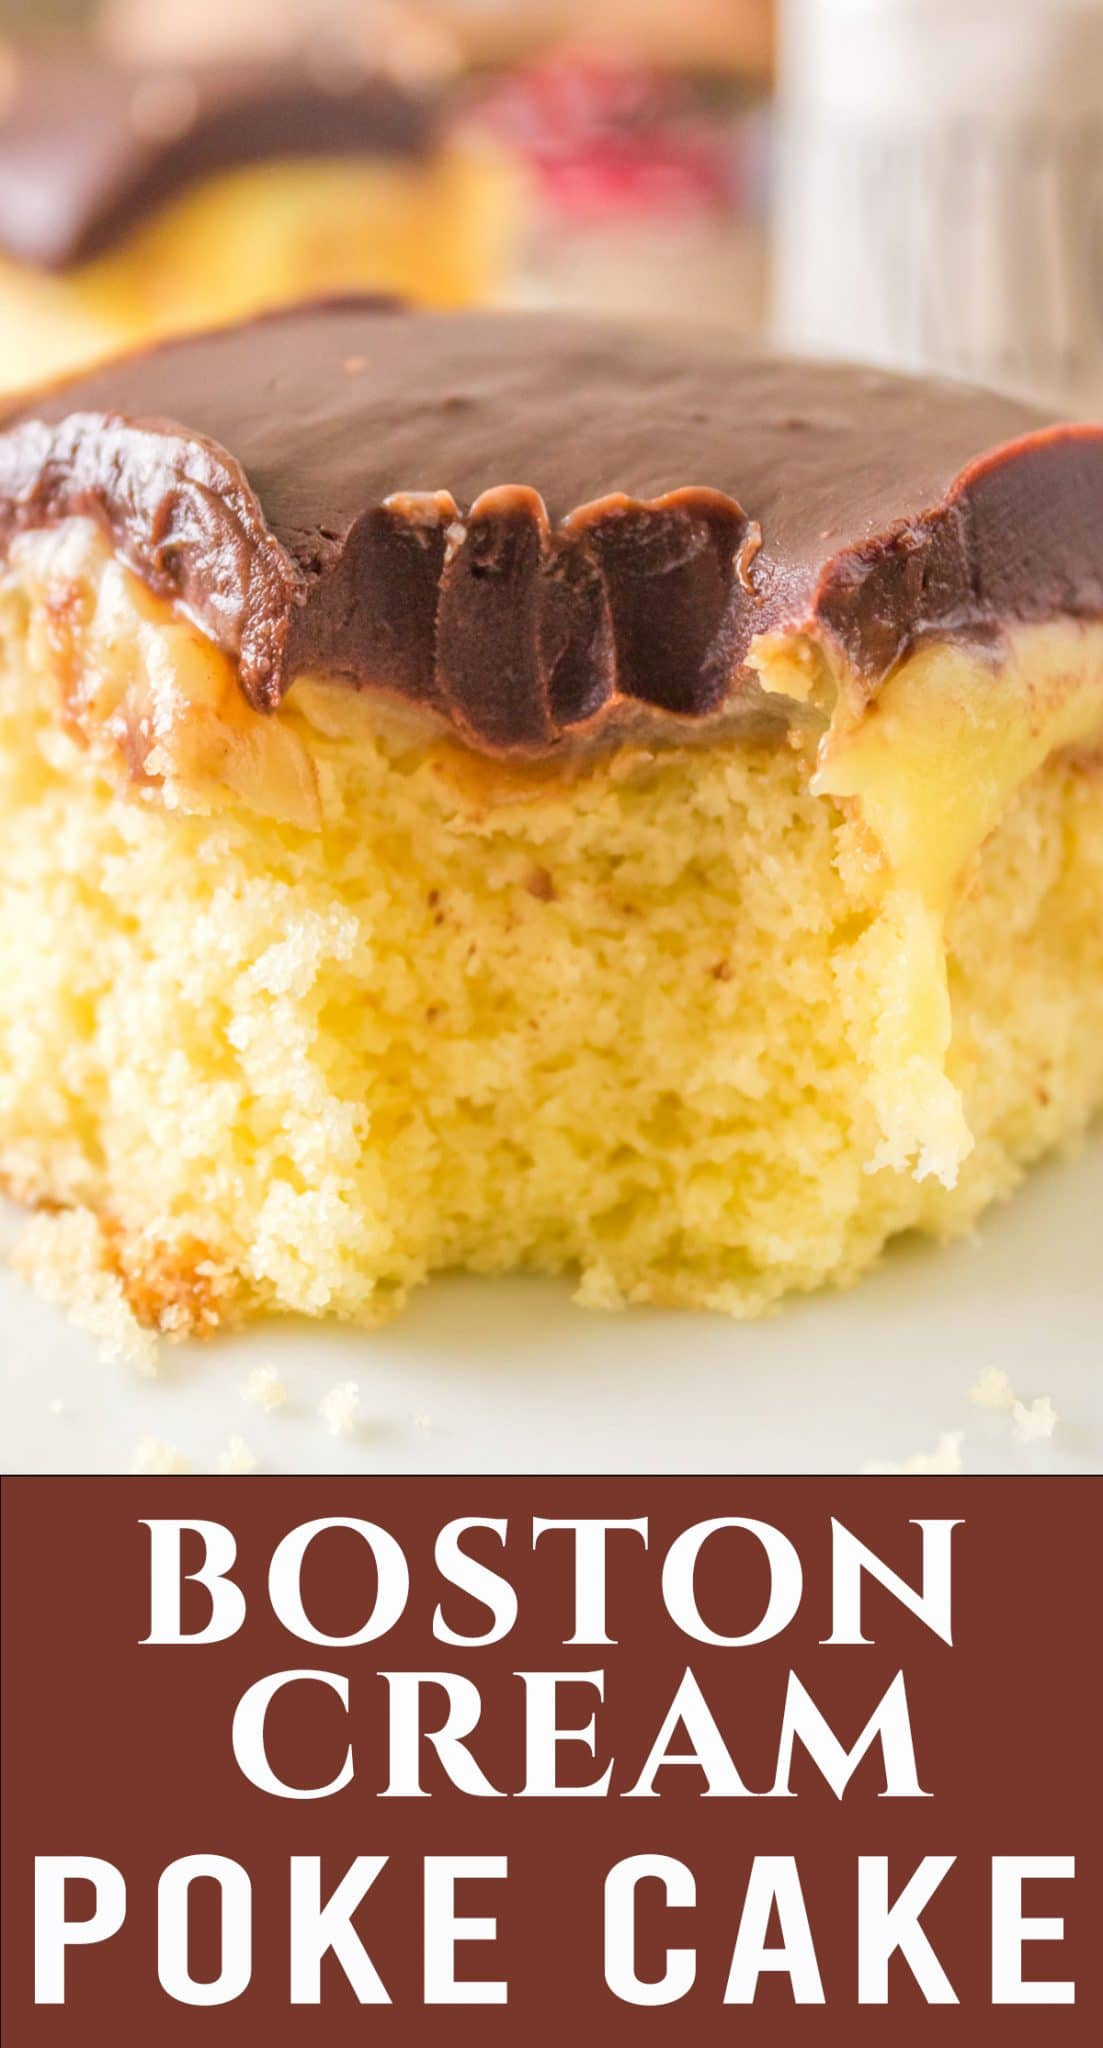 Cool and creamy, this Boston Cream Poke Cake makes a great potluck cake for picnics and dinners. You'll love the chocolate ganache topping. via @thebestcakerecipes